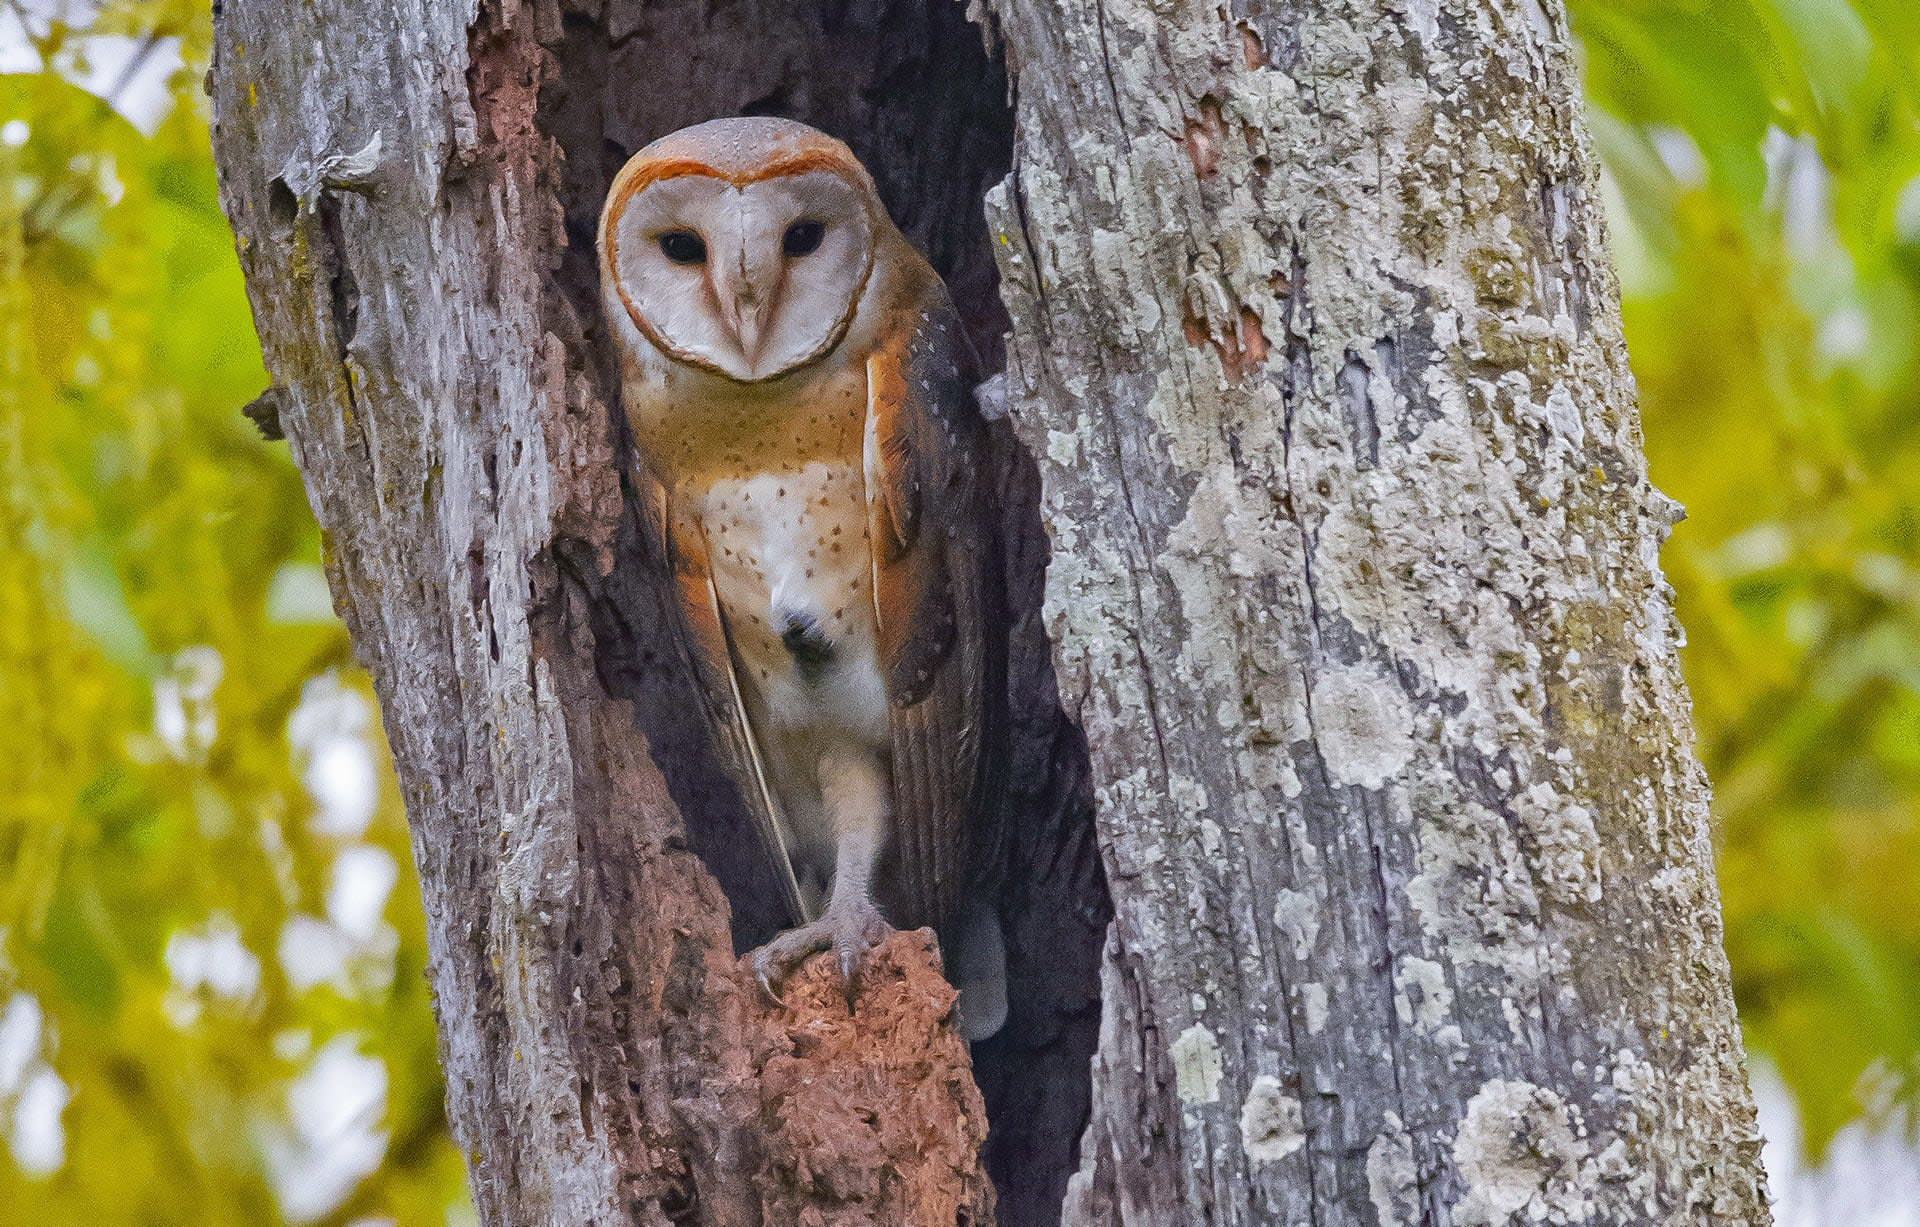 """Though the barn owl's (Tyto alba) flight is virtually soundless, it is a noisy bird. """"Barn owls are one of the most cosmopolitan birds,"""" says Dalvi. They're commonly seen in crowded, bustling cities like Mumbai, where they contribute efficiently to pest control. Though the birds are silent in flight, they're extremely vocal, and you can hear their hissing and screeching for long distances even within cities. """"They often live in large families with five to six chicks, and can make quite a racket,"""" says Dalvi."""